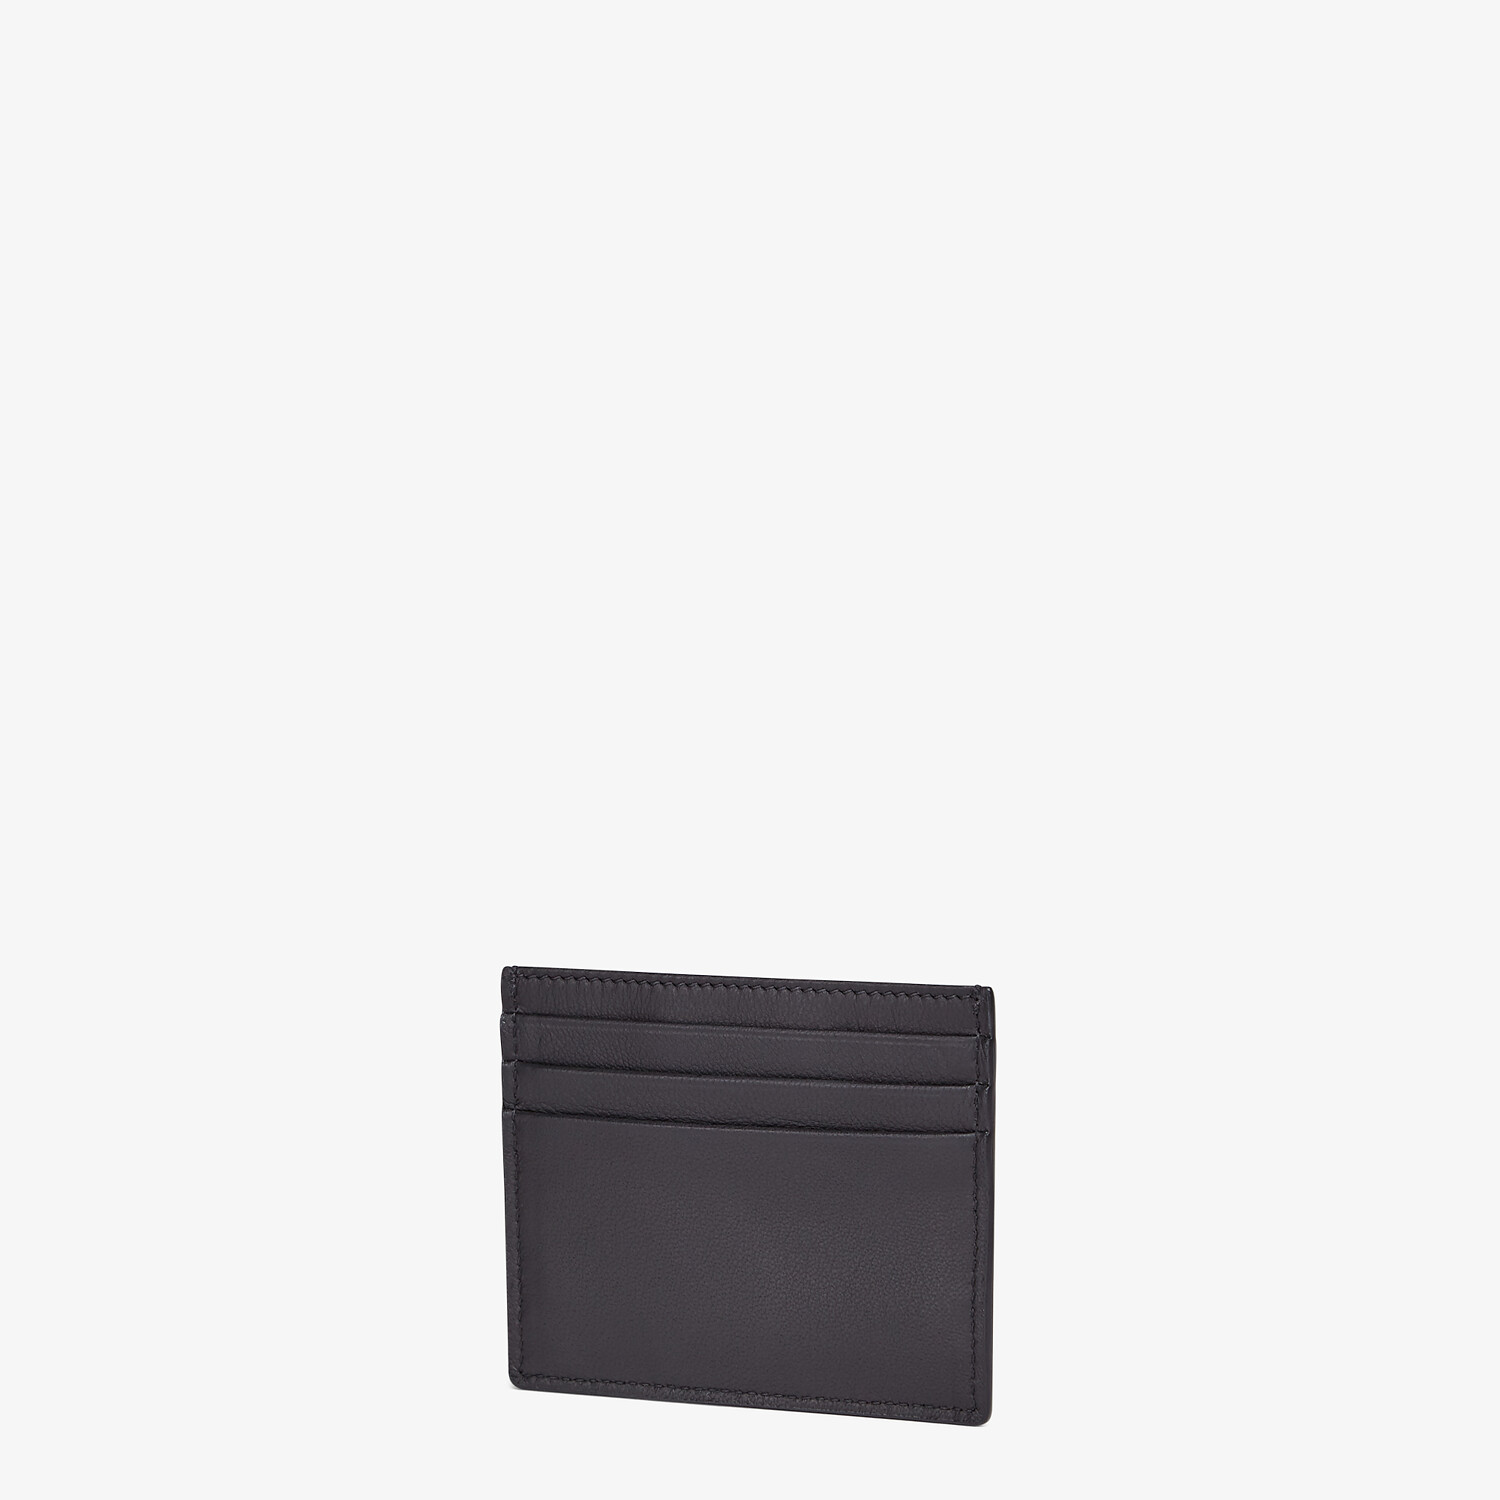 FENDI CARD HOLDER - Black nappa leather card holder - view 2 detail